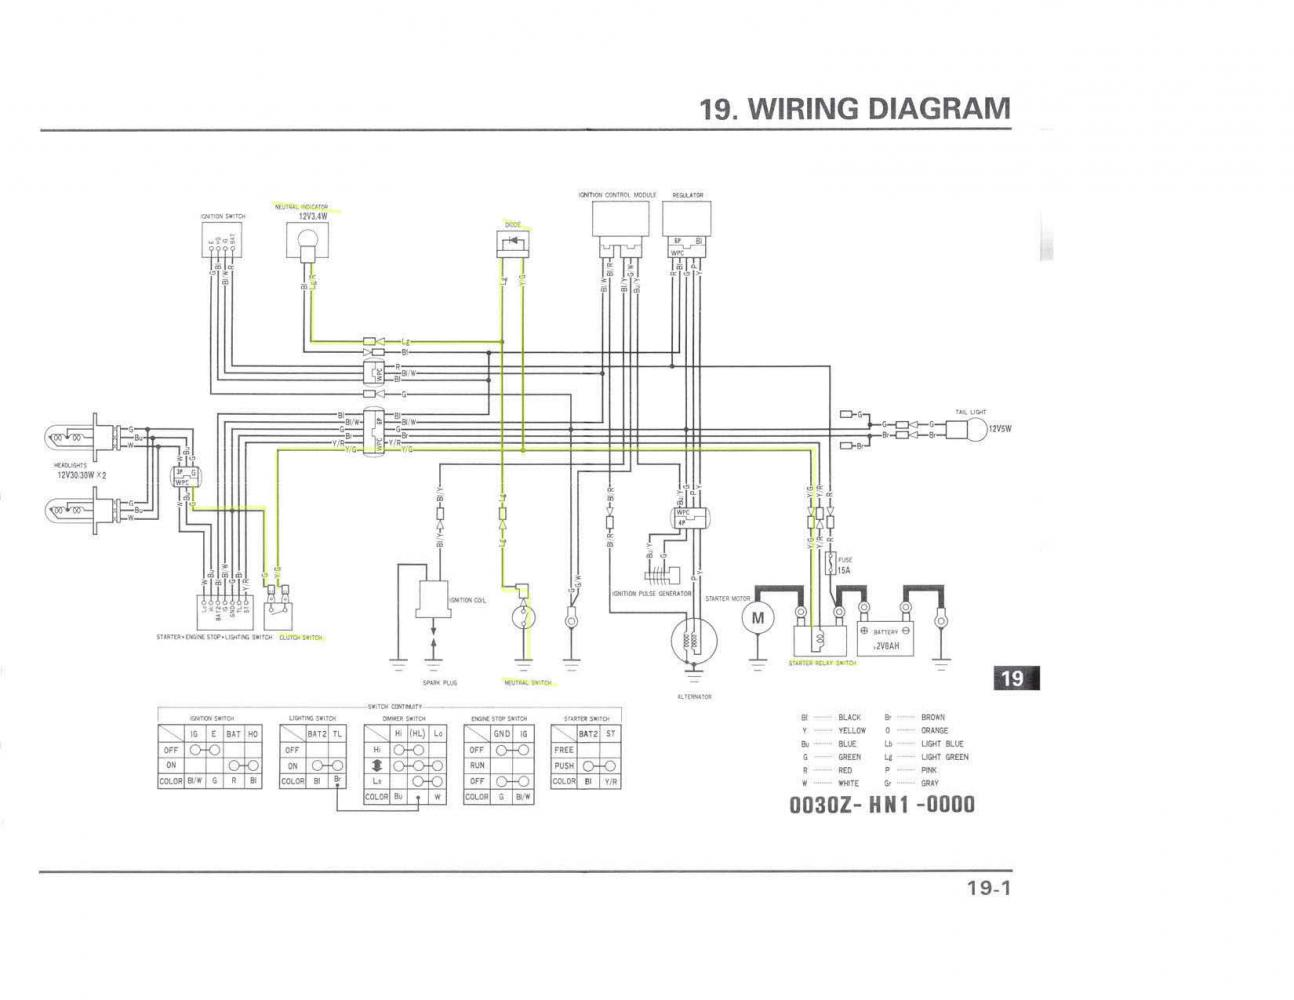 Wiring Diagram For 2001 400ex